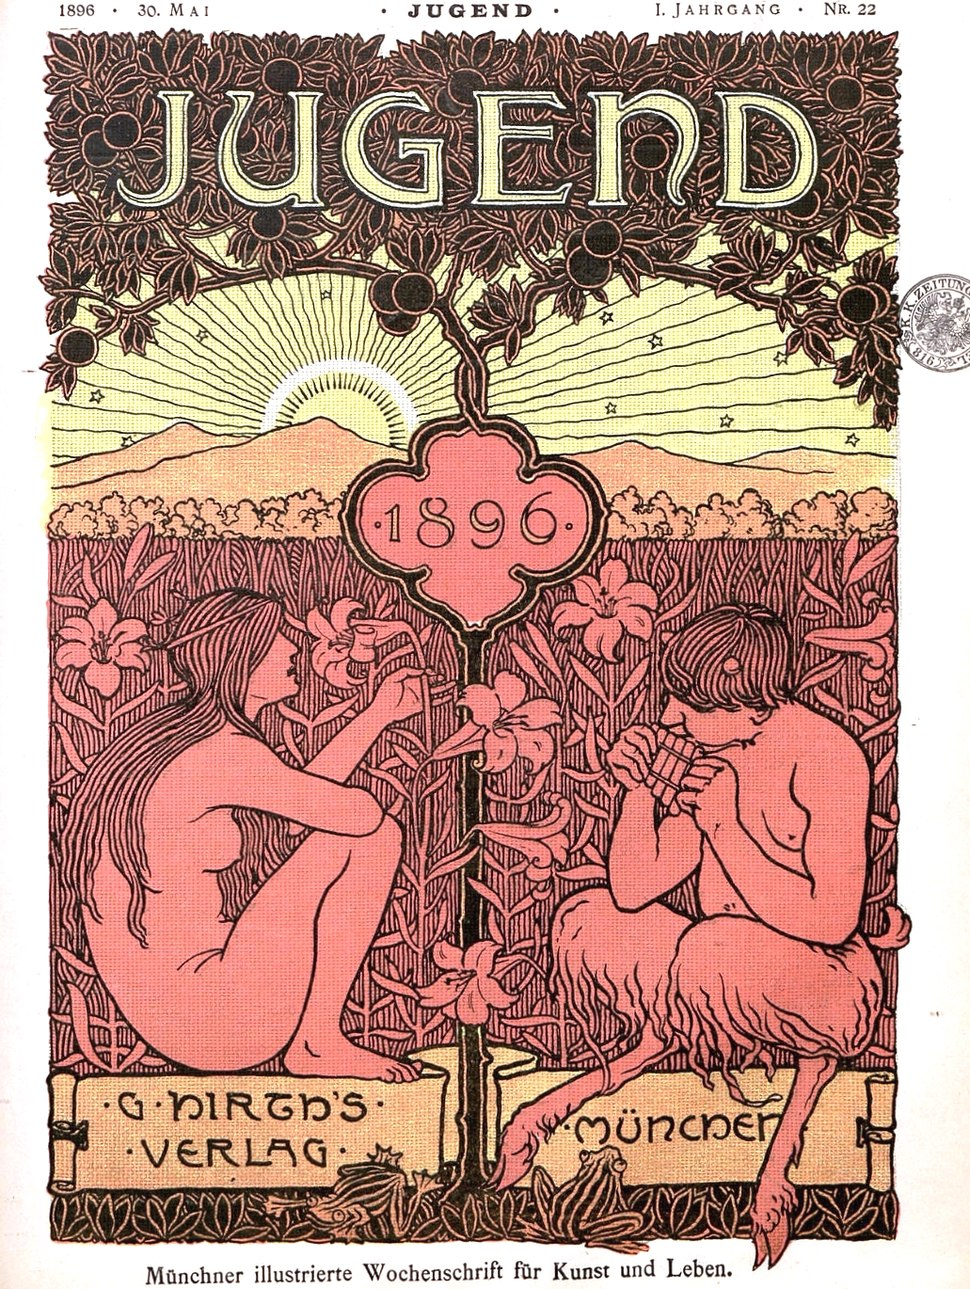 Jugend magazine cover 1896